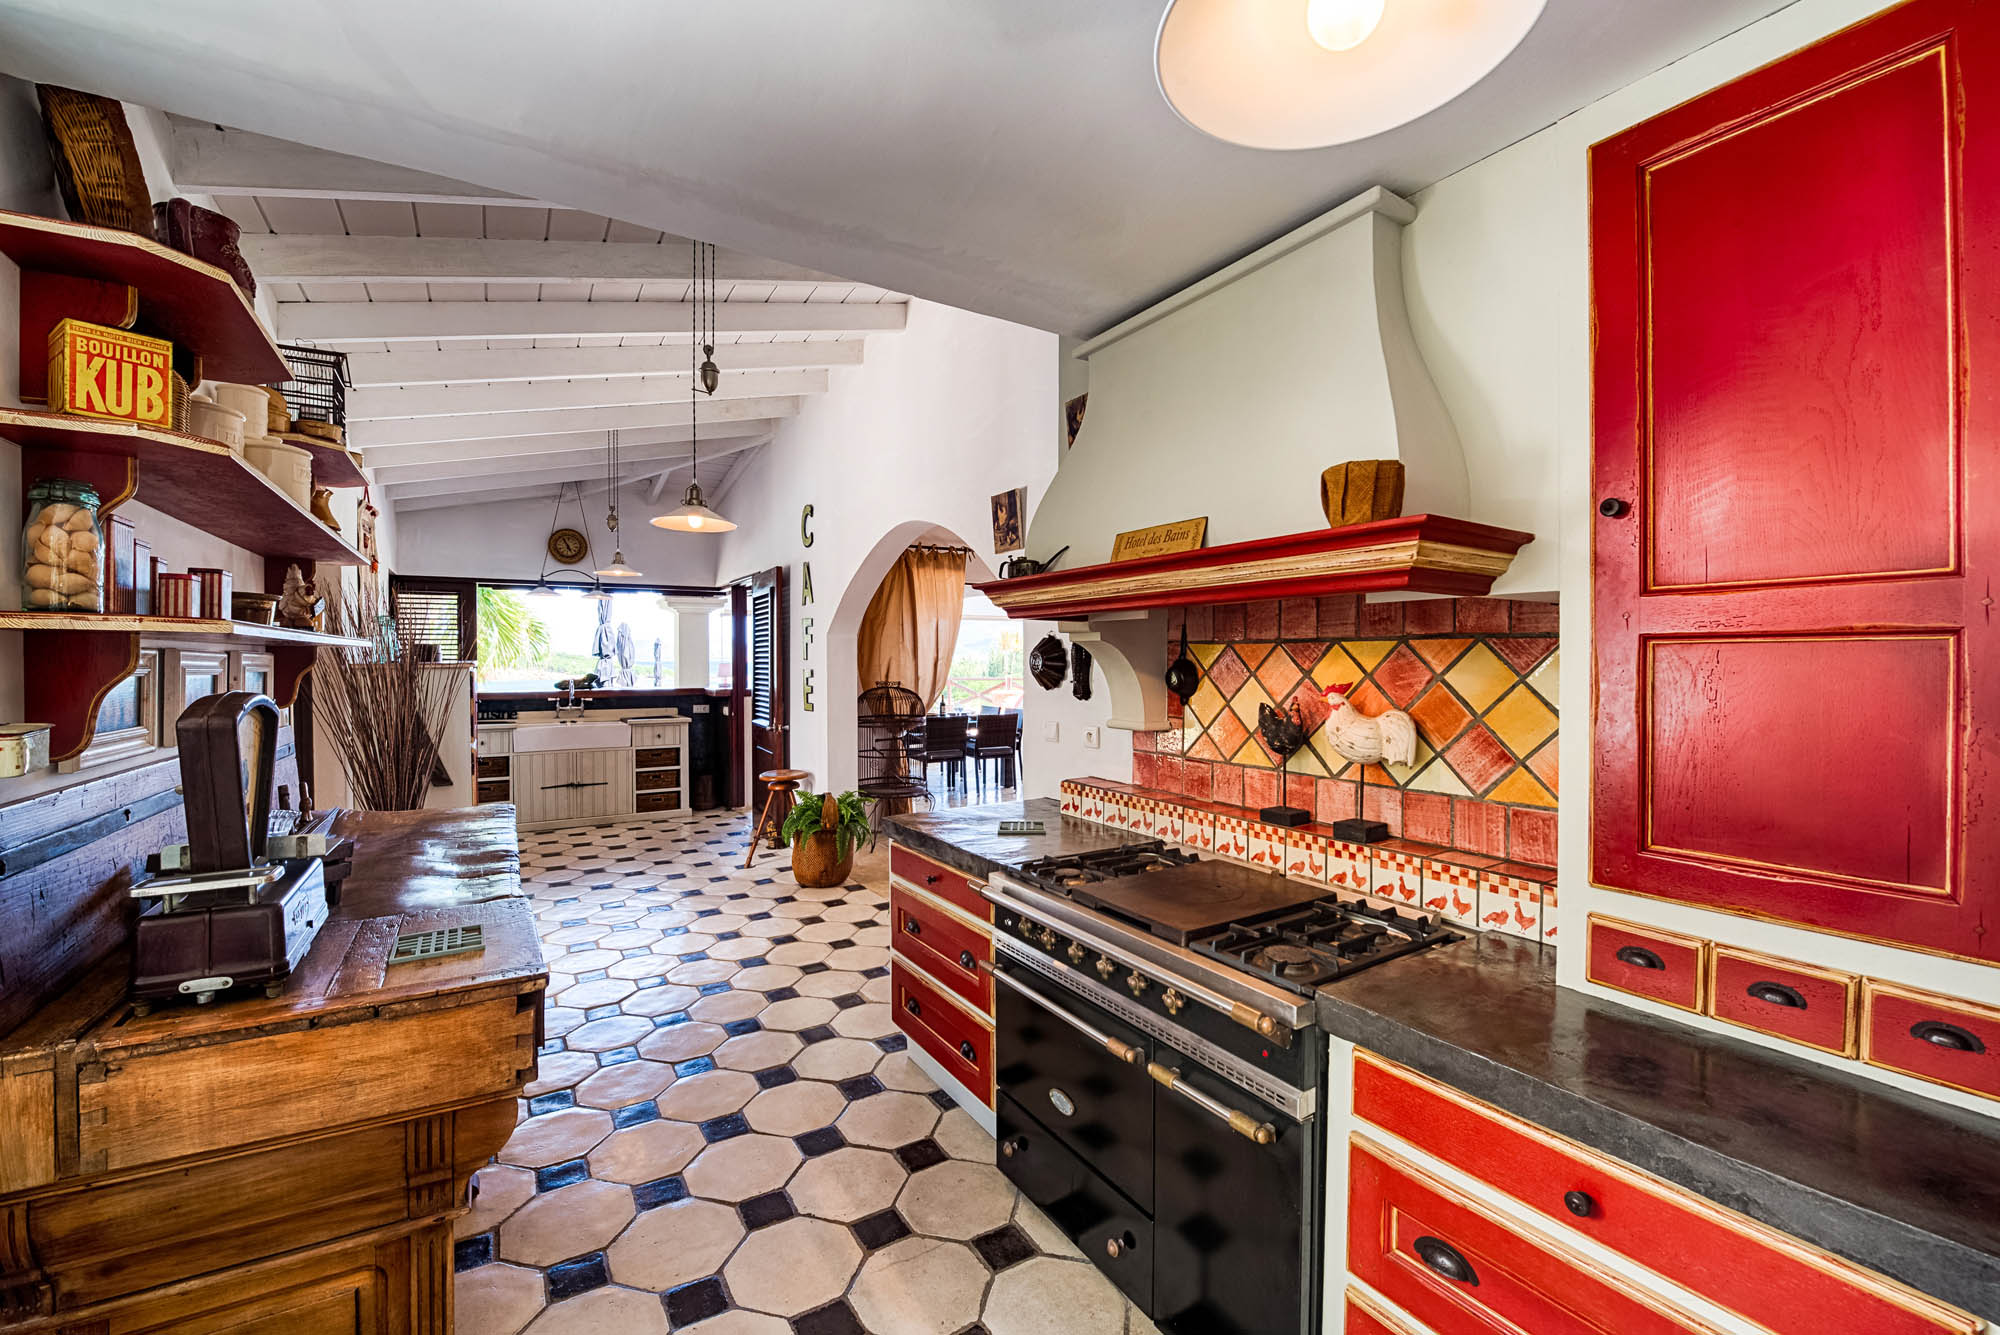 The fully equipped kitchen with everything you may need while on vacation in the Caribbeans.